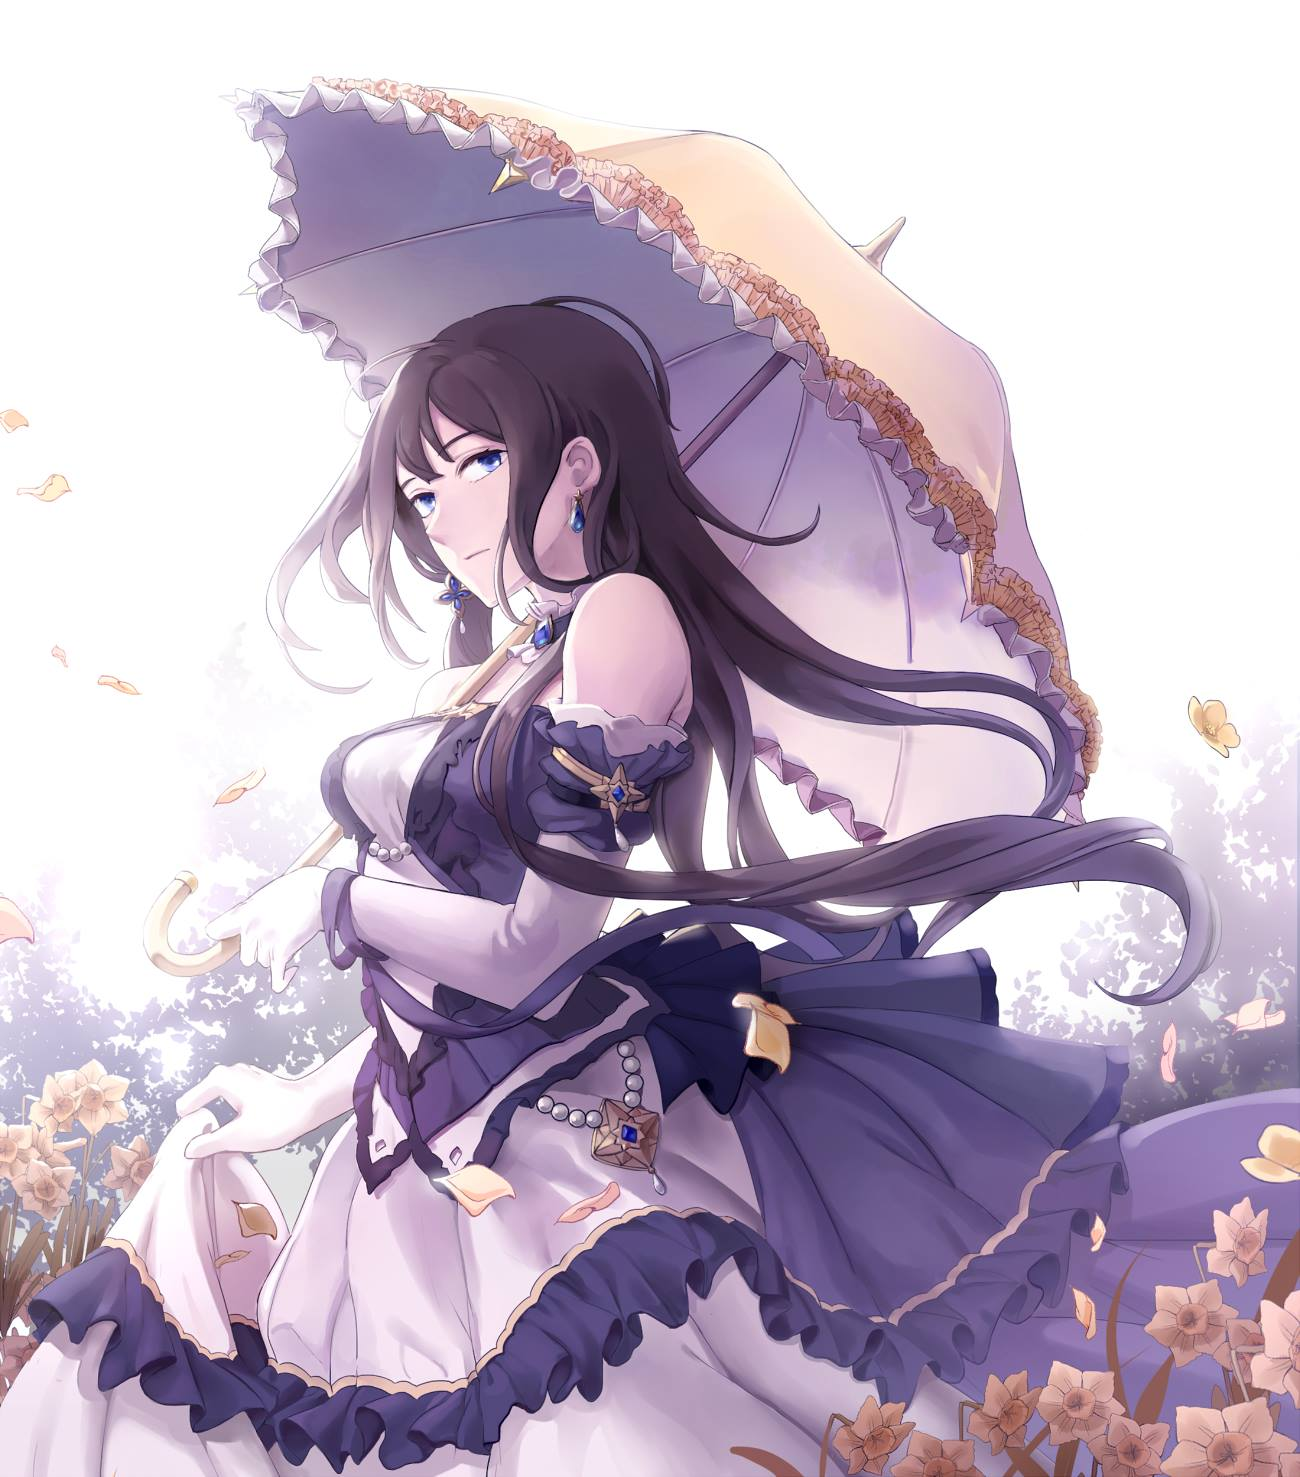 Pin By Kitty Sulima On Anime Character Art Fairytale Fantasy Anime